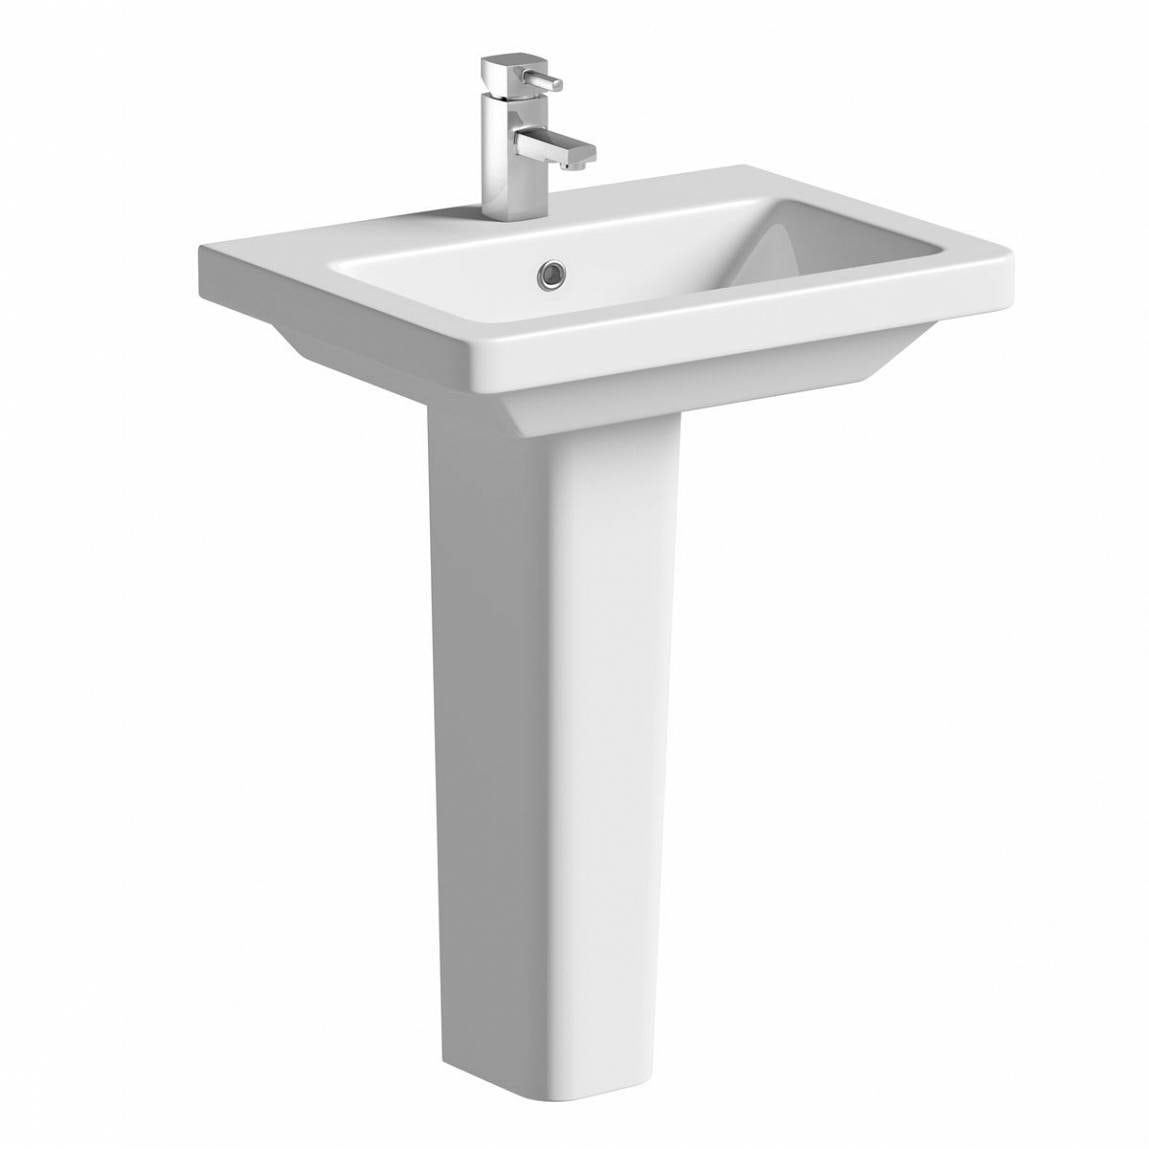 Mode Cooper 1 tap hole full pedestal basin 600mm with waste